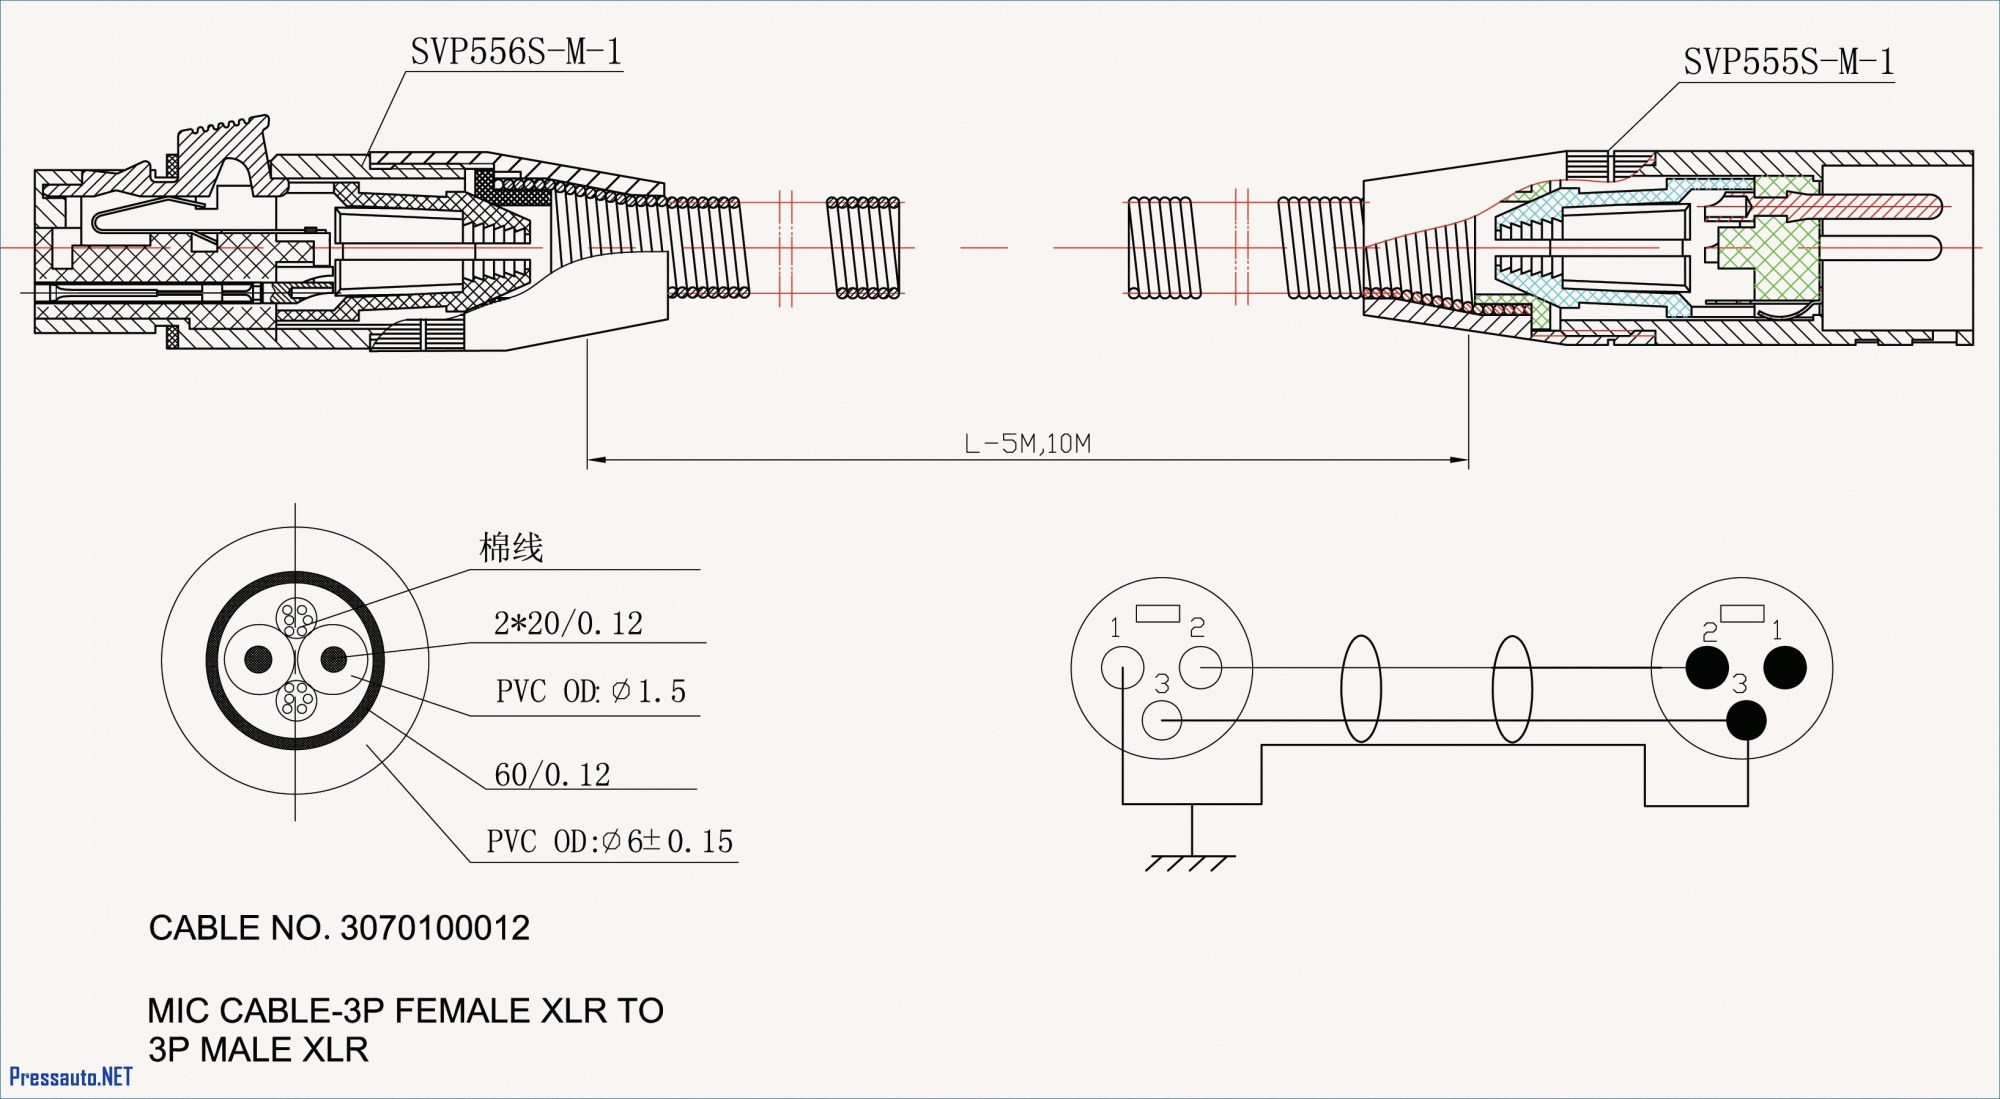 hight resolution of 2001 ford ranger wiring diagram pdf inspirational wiring diagram image 1989 ford ranger wiring diagram 2001